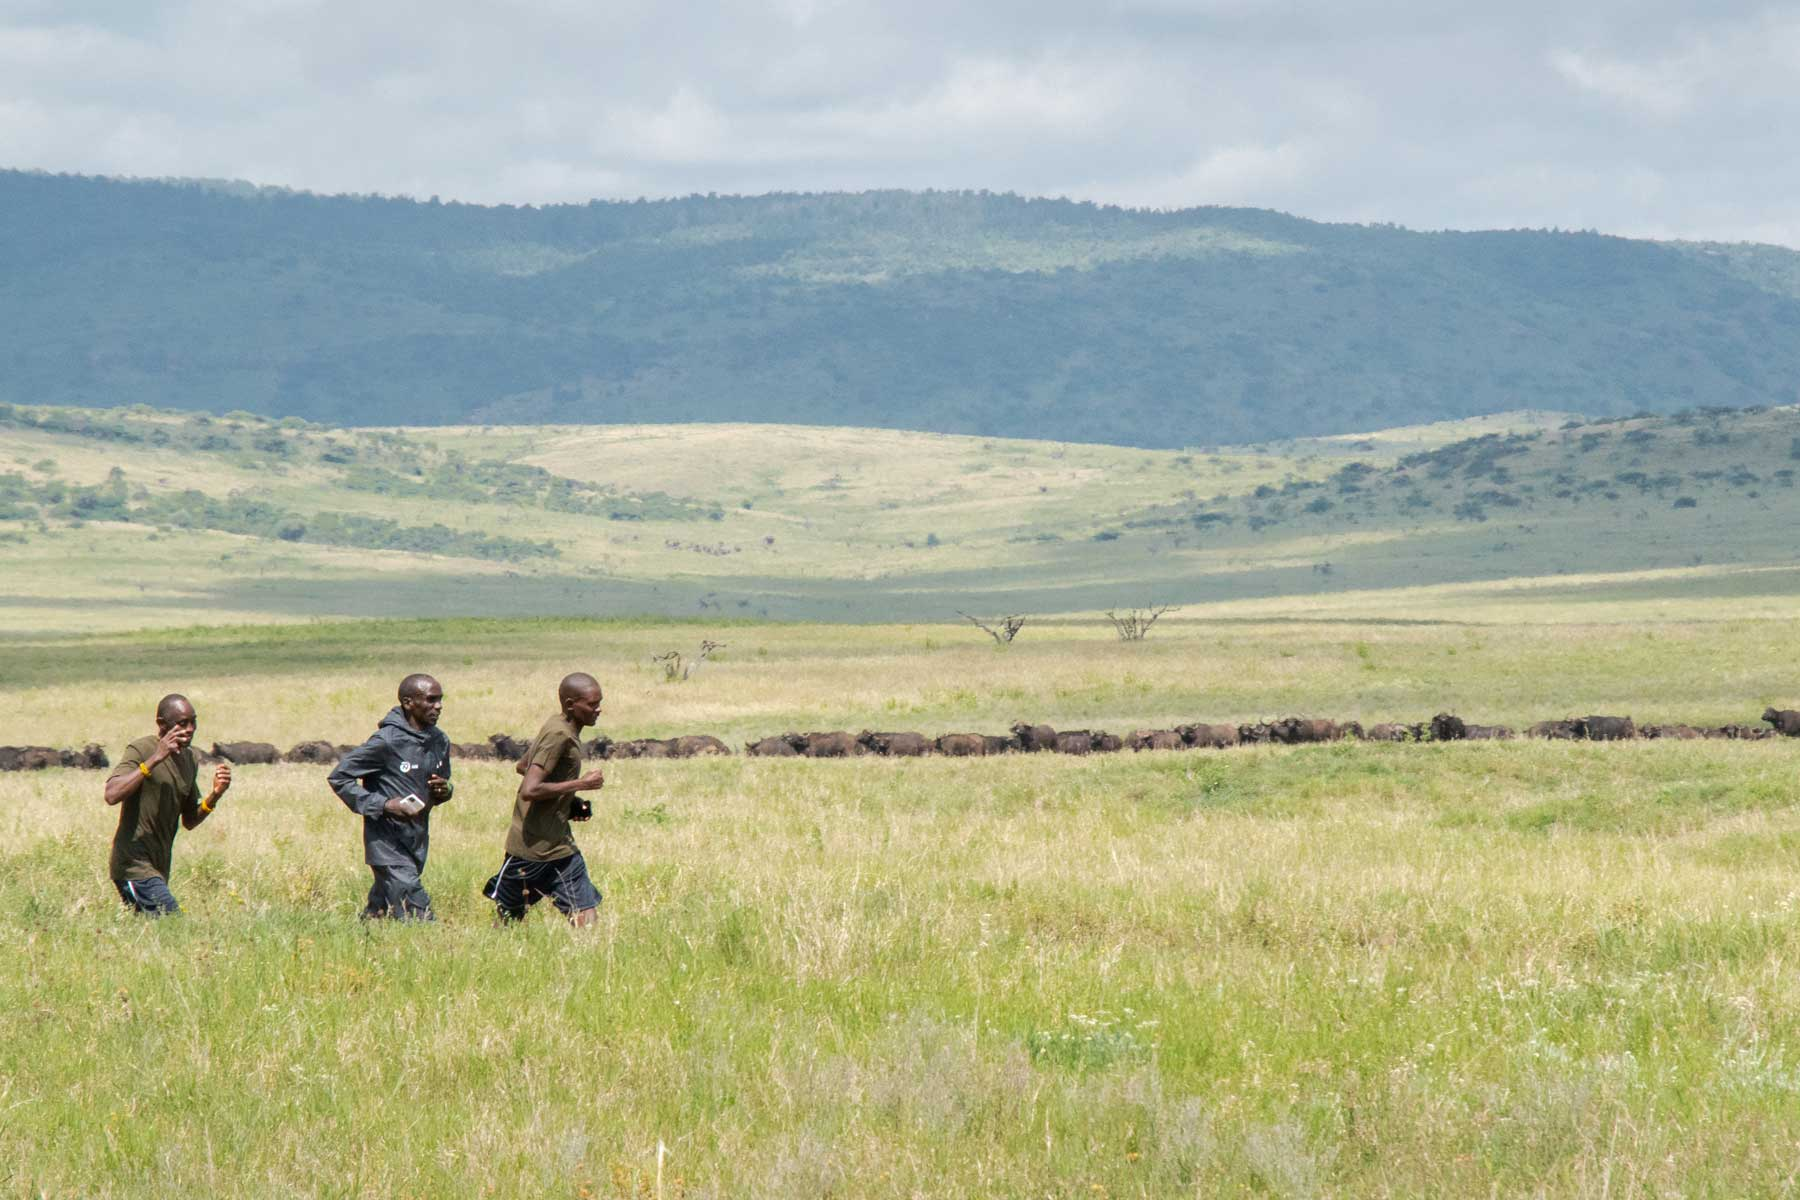 World record holder Eliud Kipchoge runs with rangers in Lewa Wildlife Conservancy, Kenya